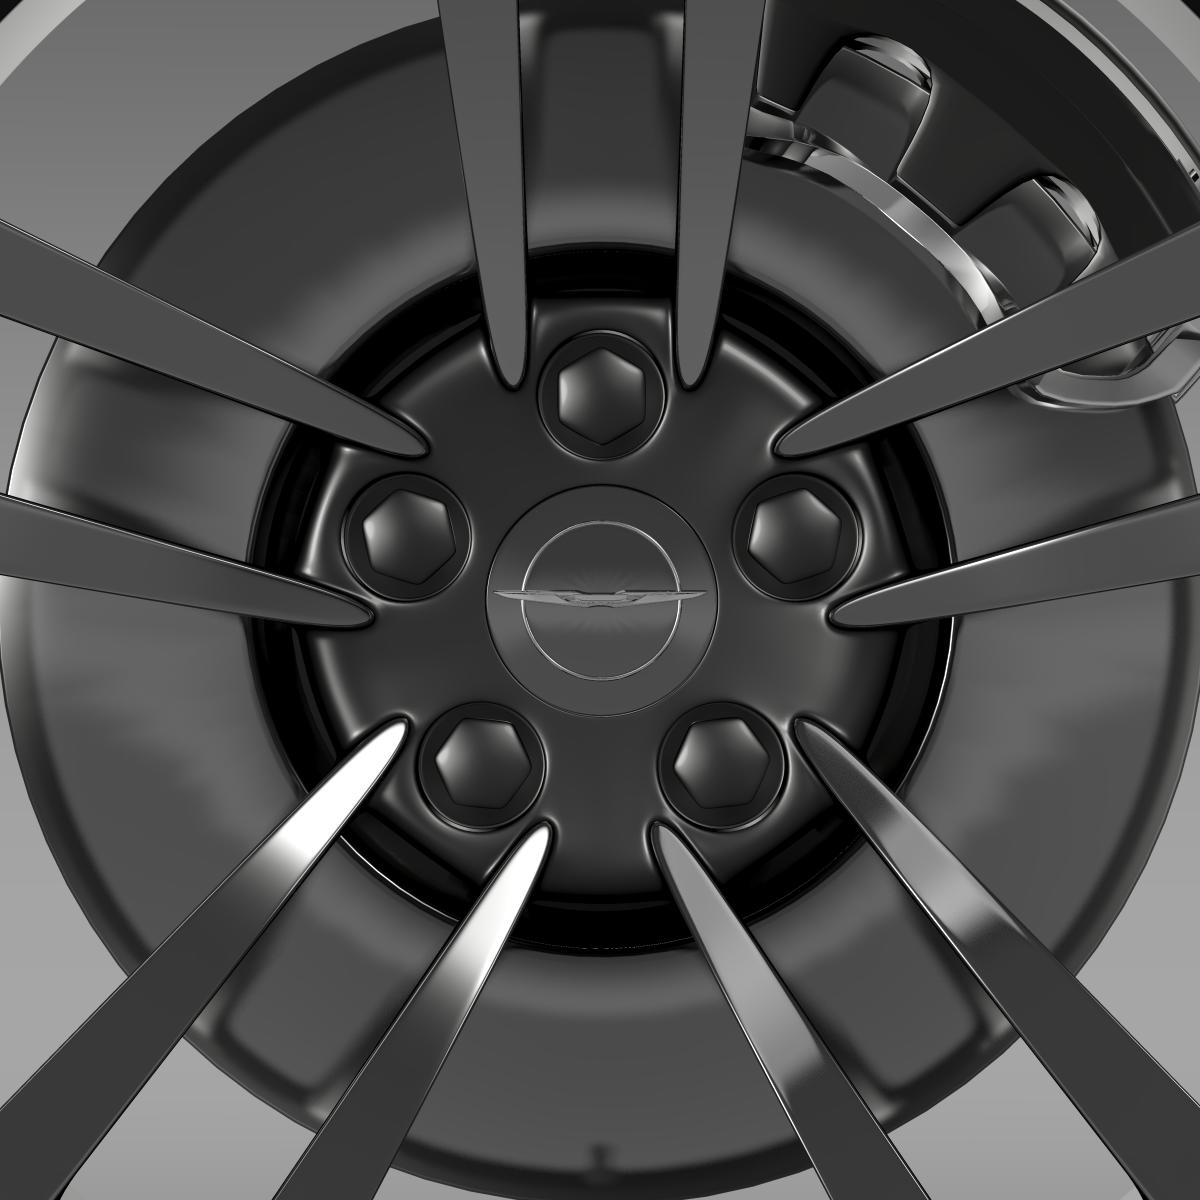 chrysler 300 srt8 core wheel 3d model 3ds max fbx c4d lwo ma mb hrc xsi obj 210630